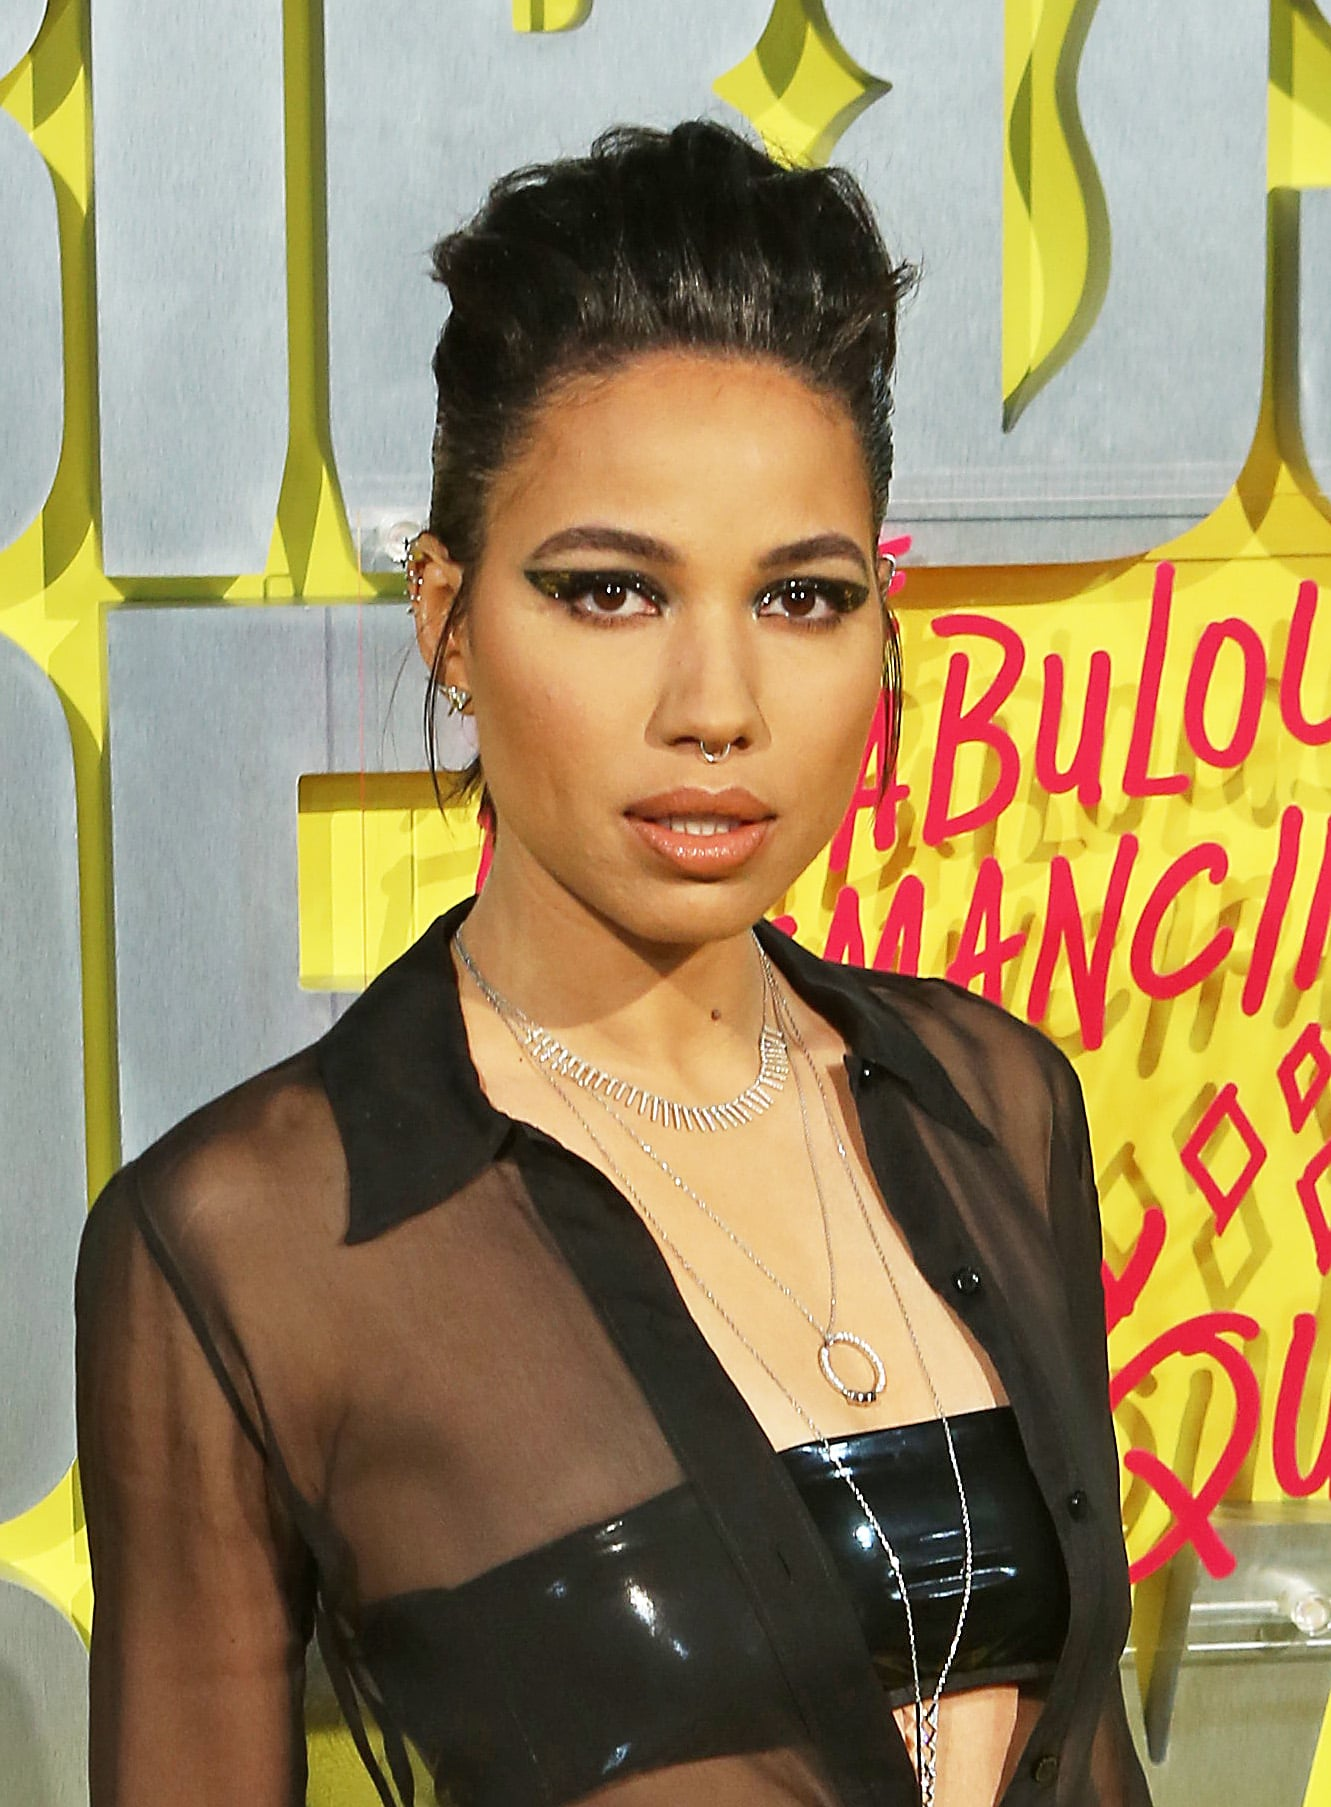 Jurnee Smollett Bell At The Birds Of Prey World Premiere In London Margot Robbie Met The Love Island Cast At Birds Of Prey Premiere And We Can T Tell Who S More Jazzed